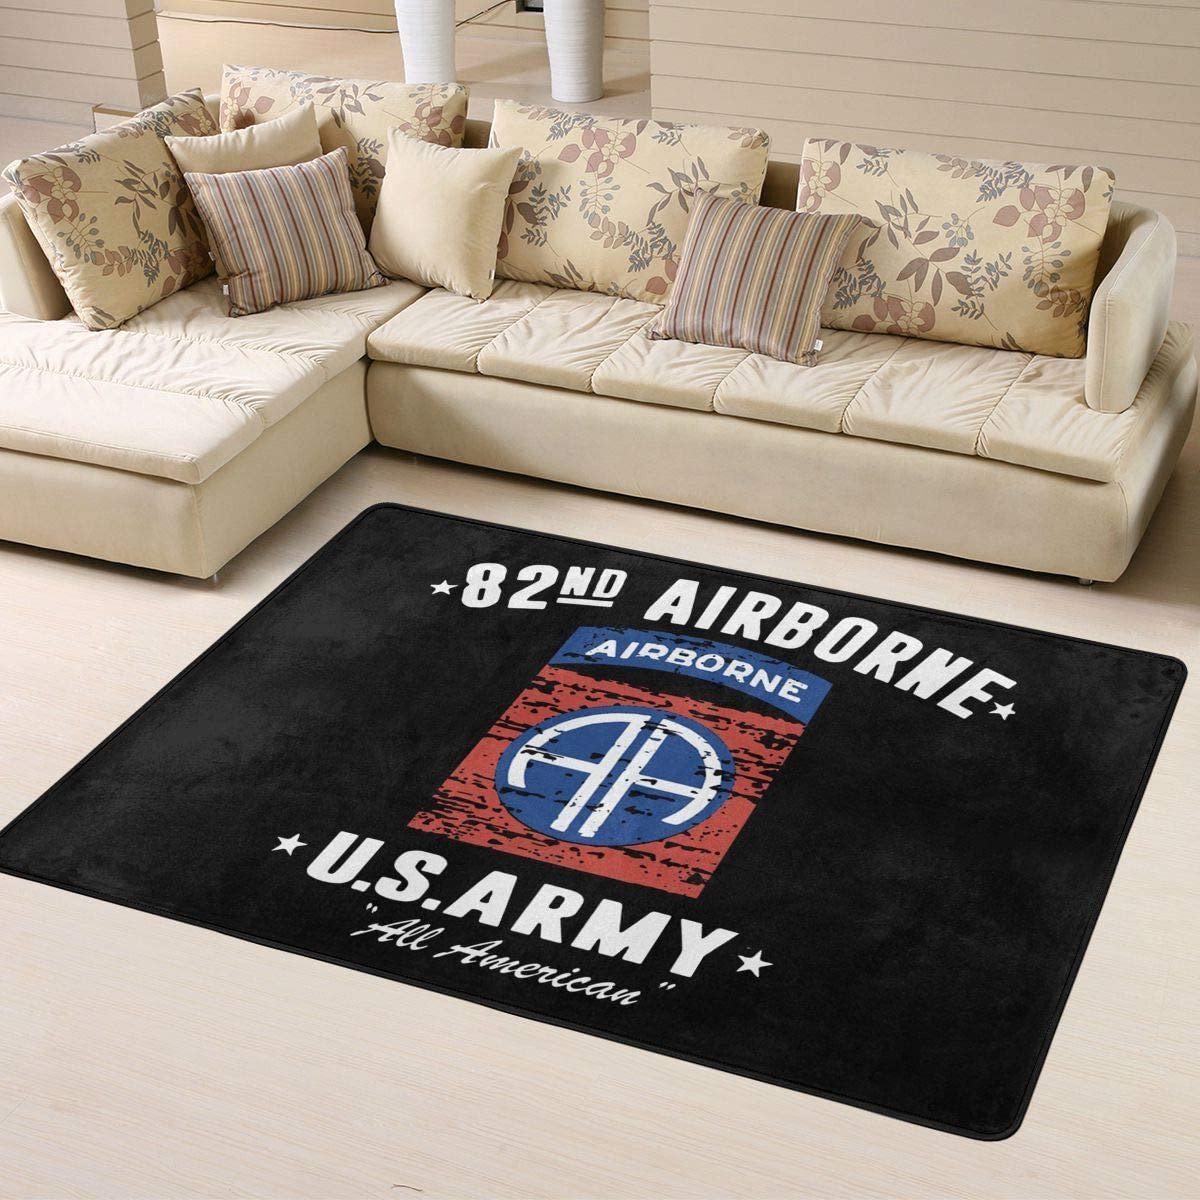 NOT US Army Veteran 82nd Airborne Super Soft Personalized Carpet Decorator Floor Rug and Carpets 63 X 48 Inch Game Room Floor Carpet